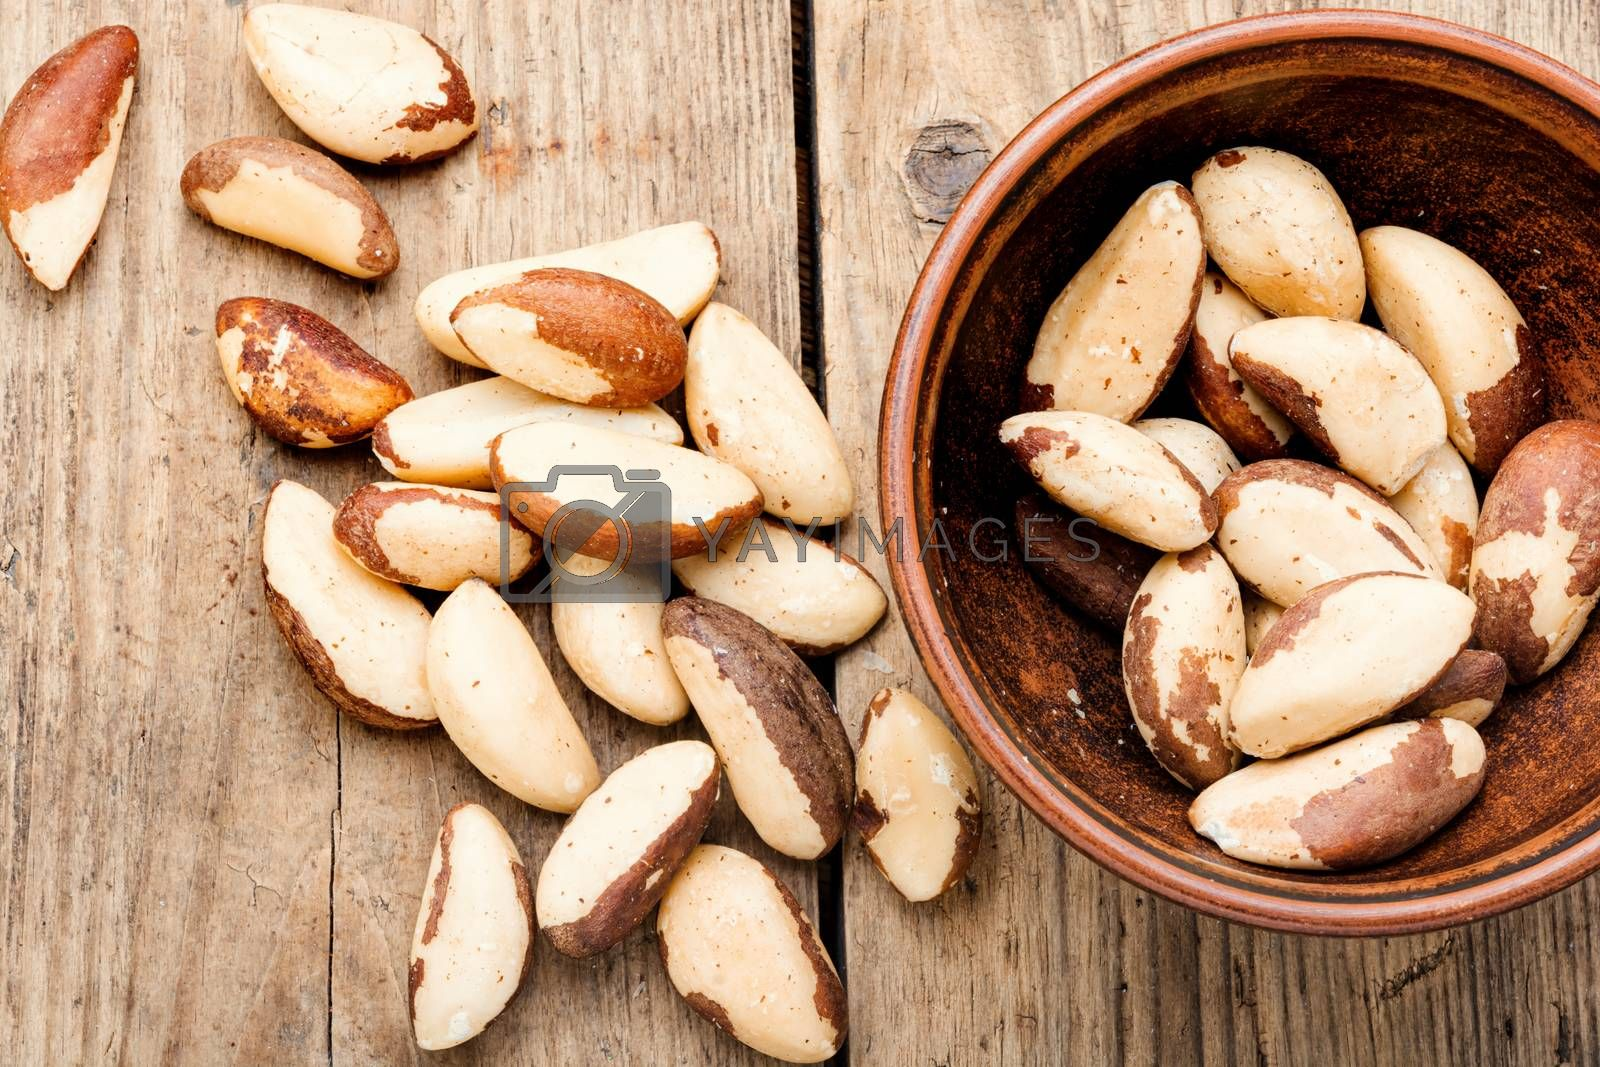 Tasty peeled brazil nut in bowl on old wooden table